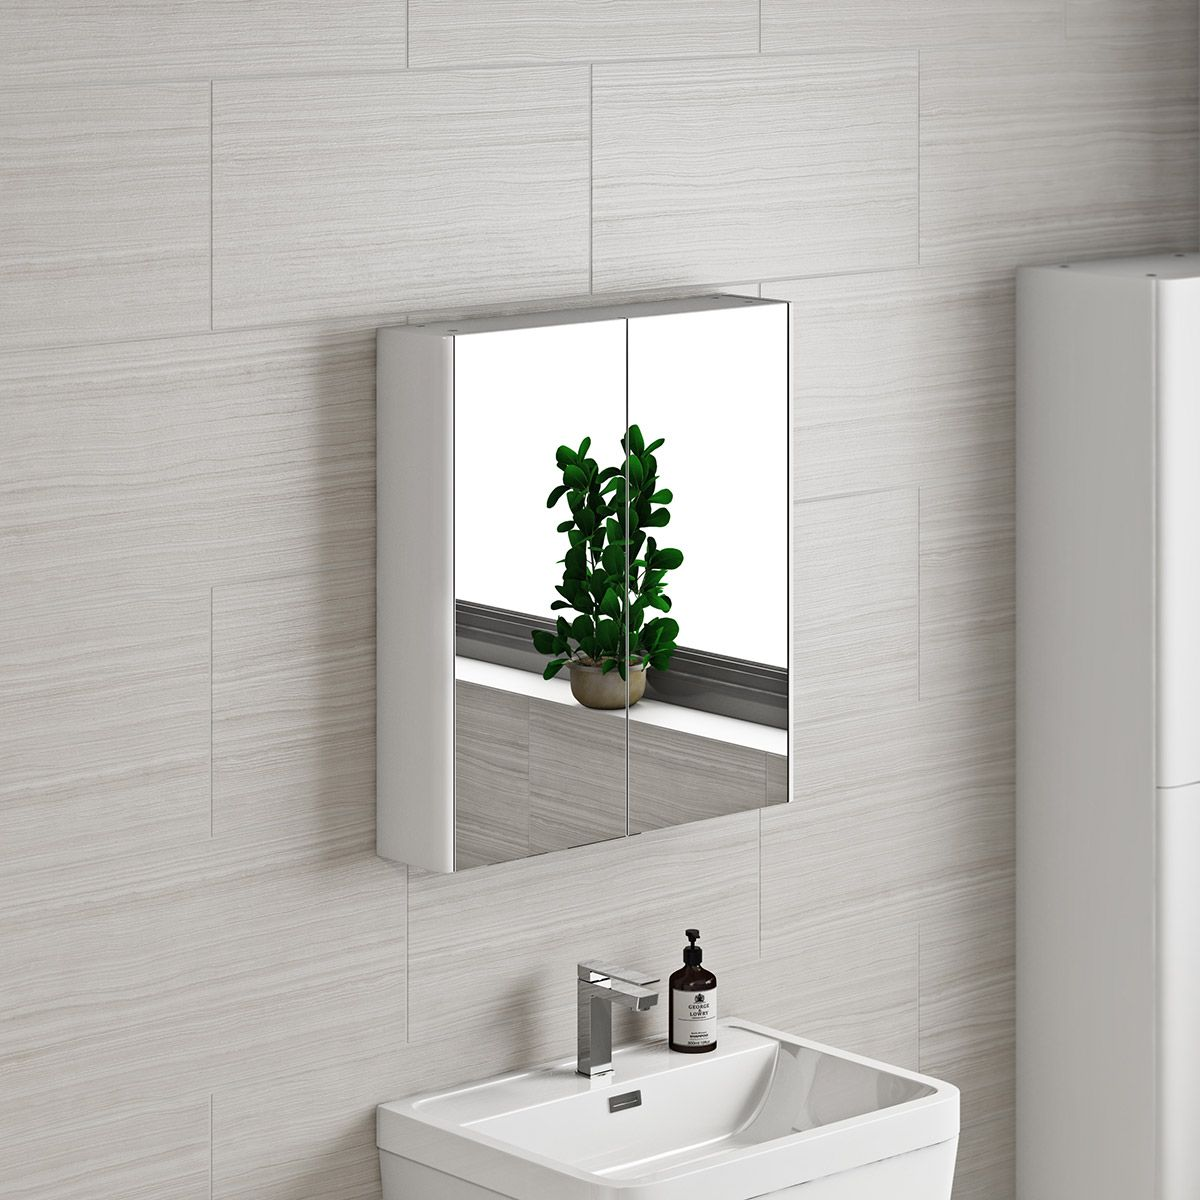 Mode white curved mirror cabinet 600mm   Our bathroom   Pinterest ...